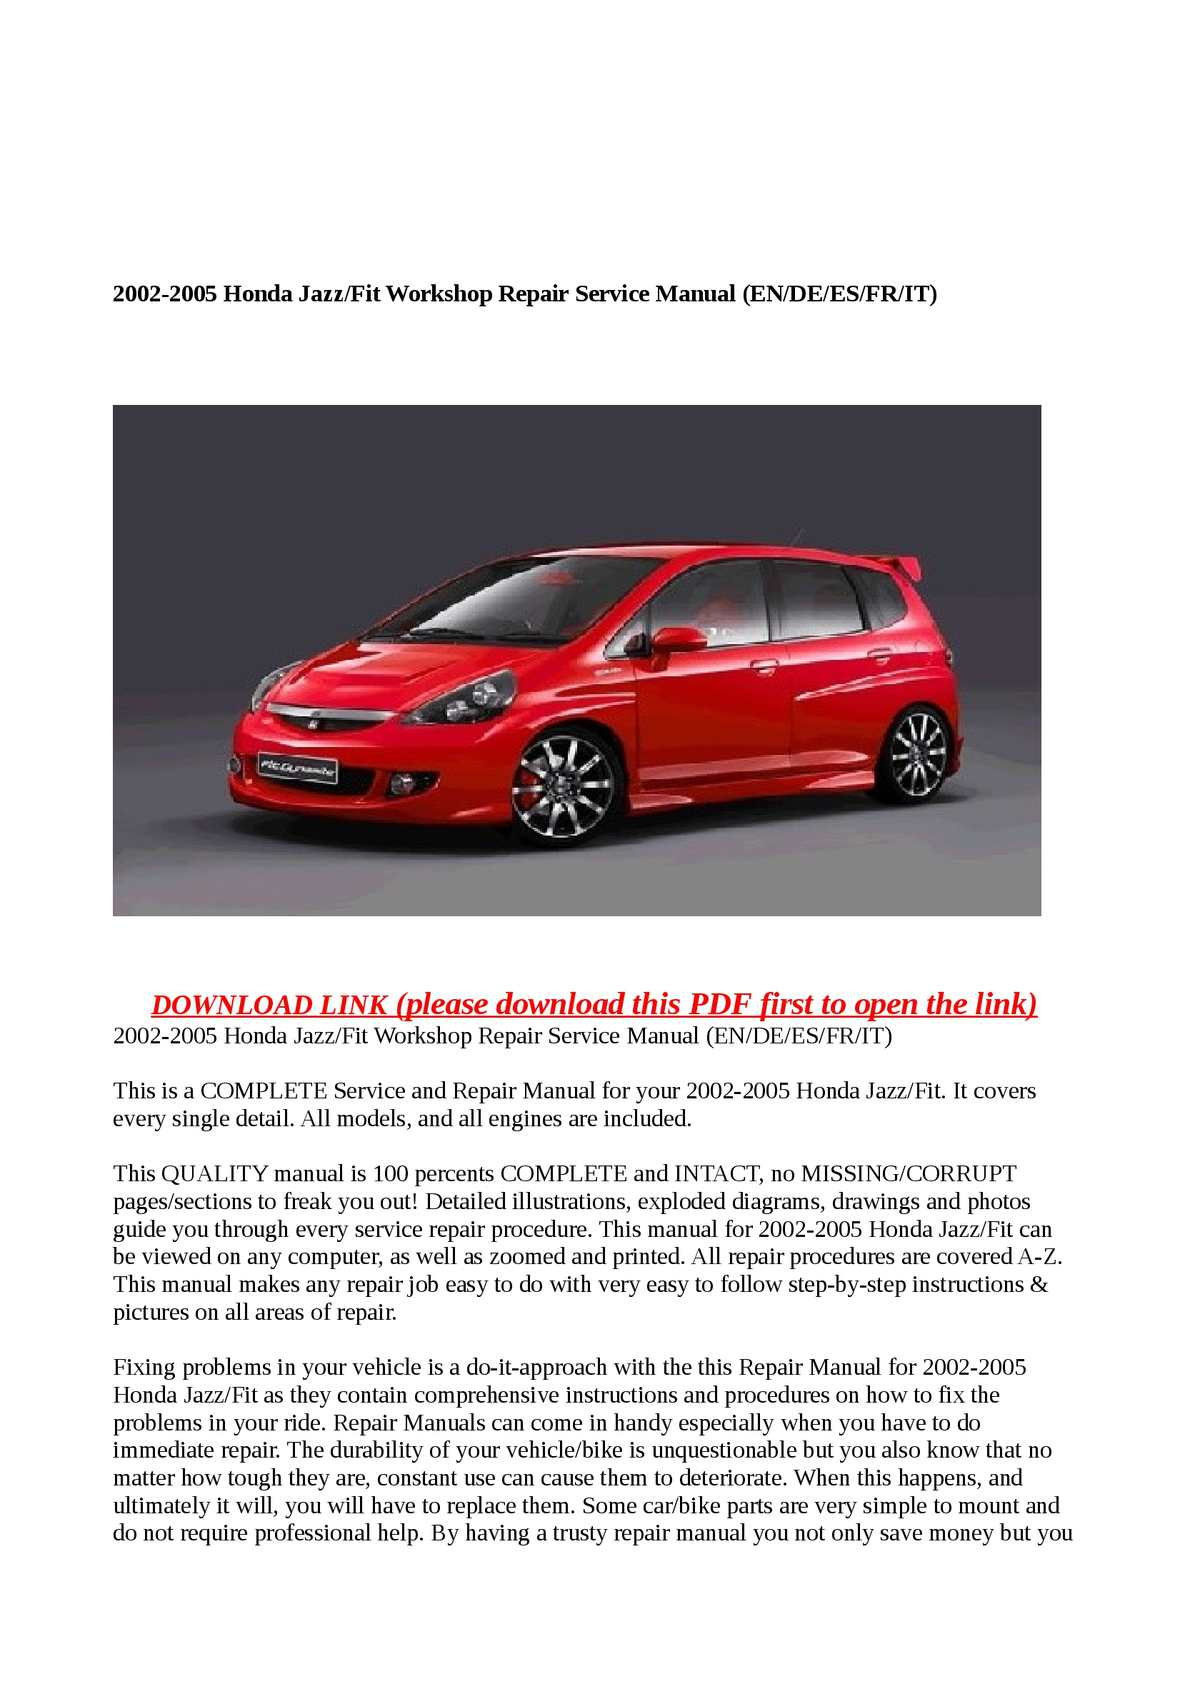 Honda Fit Service Manual Pdf Fiat World Test Drive Rh Fiatworldtestdrive  Com Honda Metropolitan Scooter Manual Pdf 2013 Honda Metropolitan Top Speed